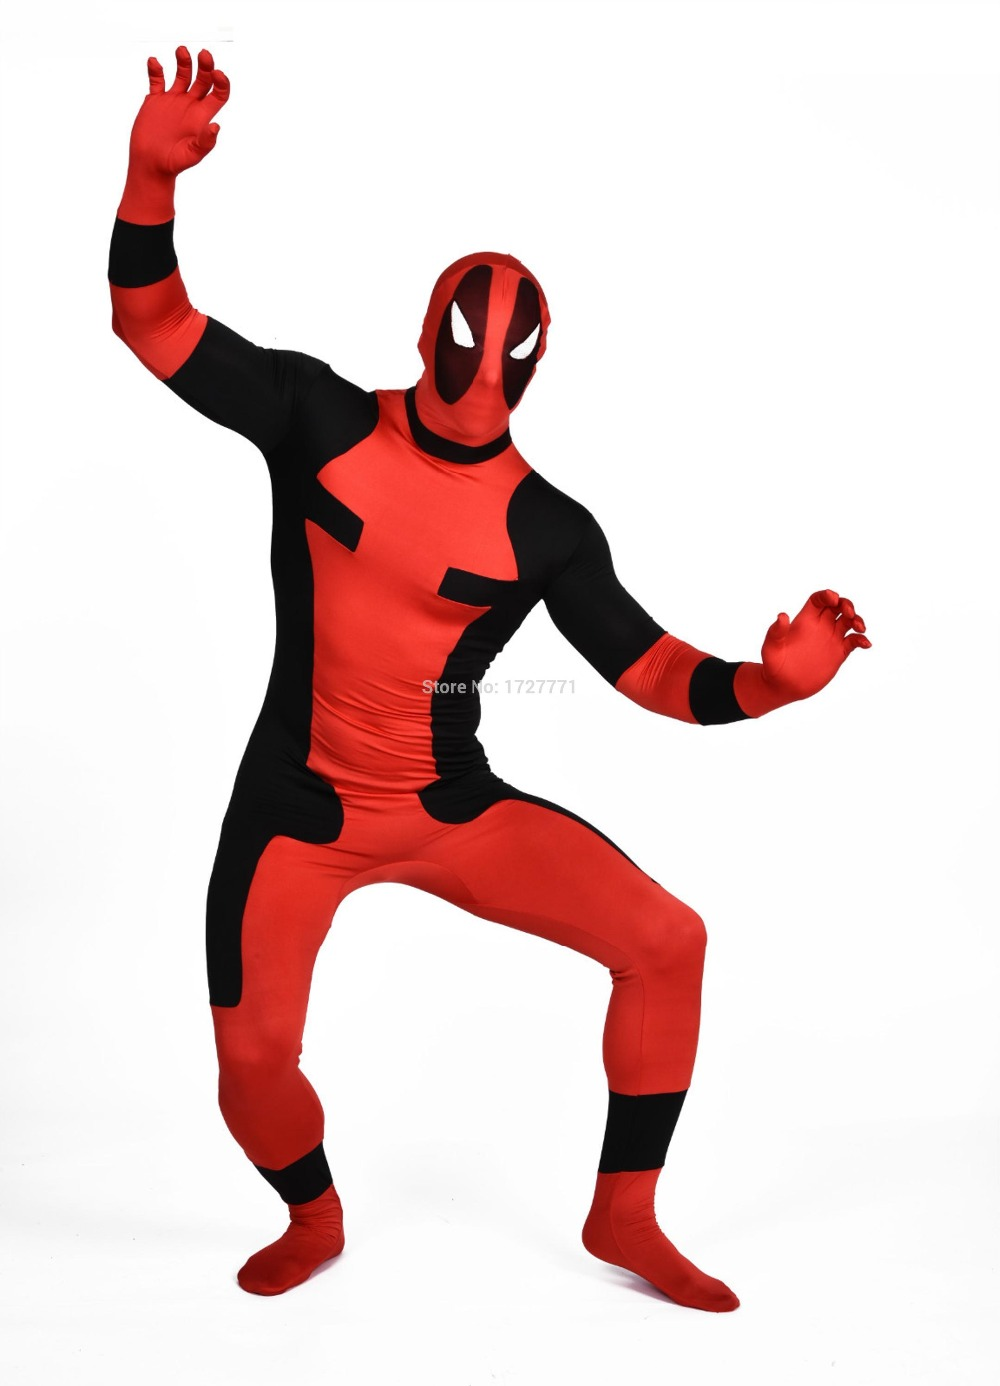 (DP914) Black And Red Tights Unisex Cheap Deadpool Fetish Zentai Suits Superhero Cosplay Halloween Party Costume